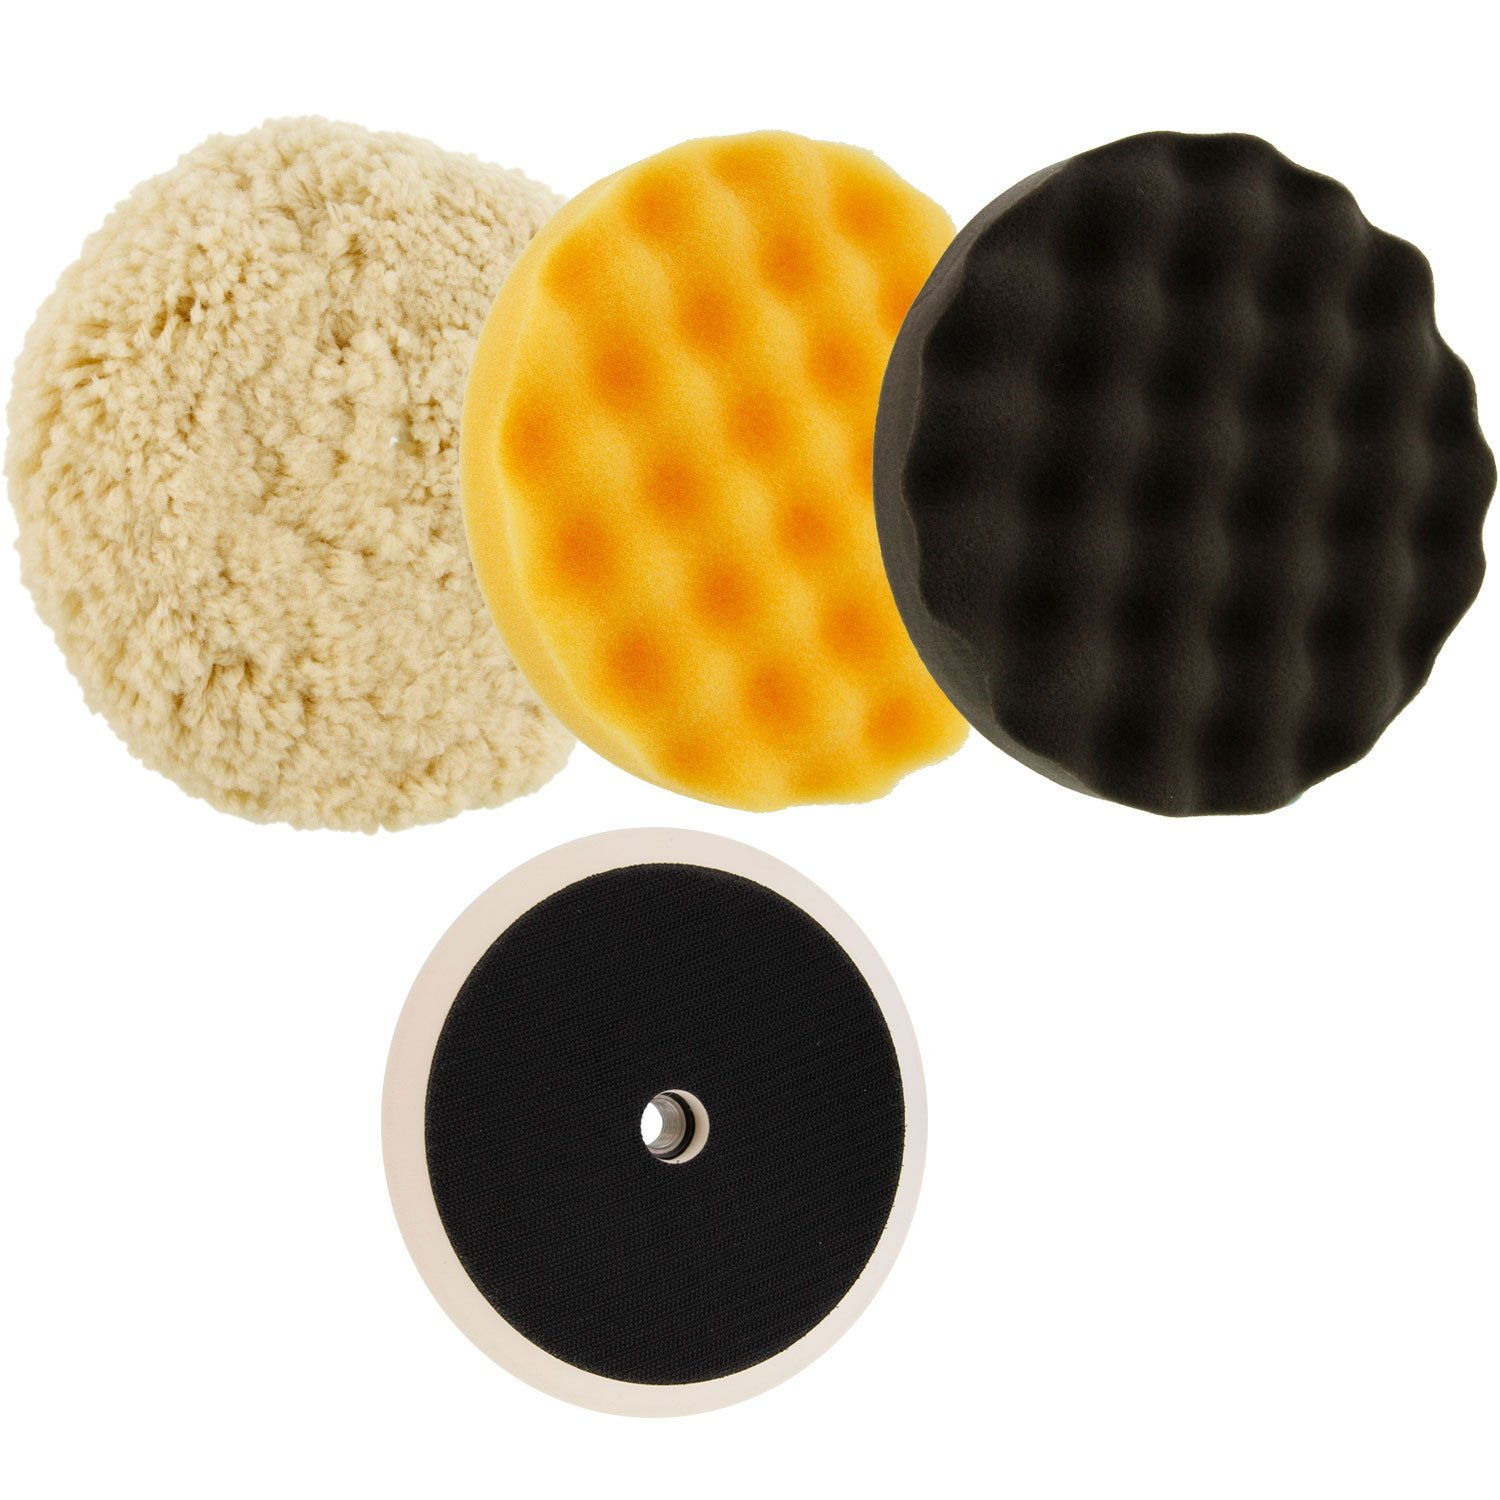 TCP Global Complete 3 Pad Buffing and Polishing Kit with 3 - 8'' Pads; 2 Waffle Foam and 1 Wool Grip Pads and a 5/8'' Threaded Polisher Grip Backing Plate